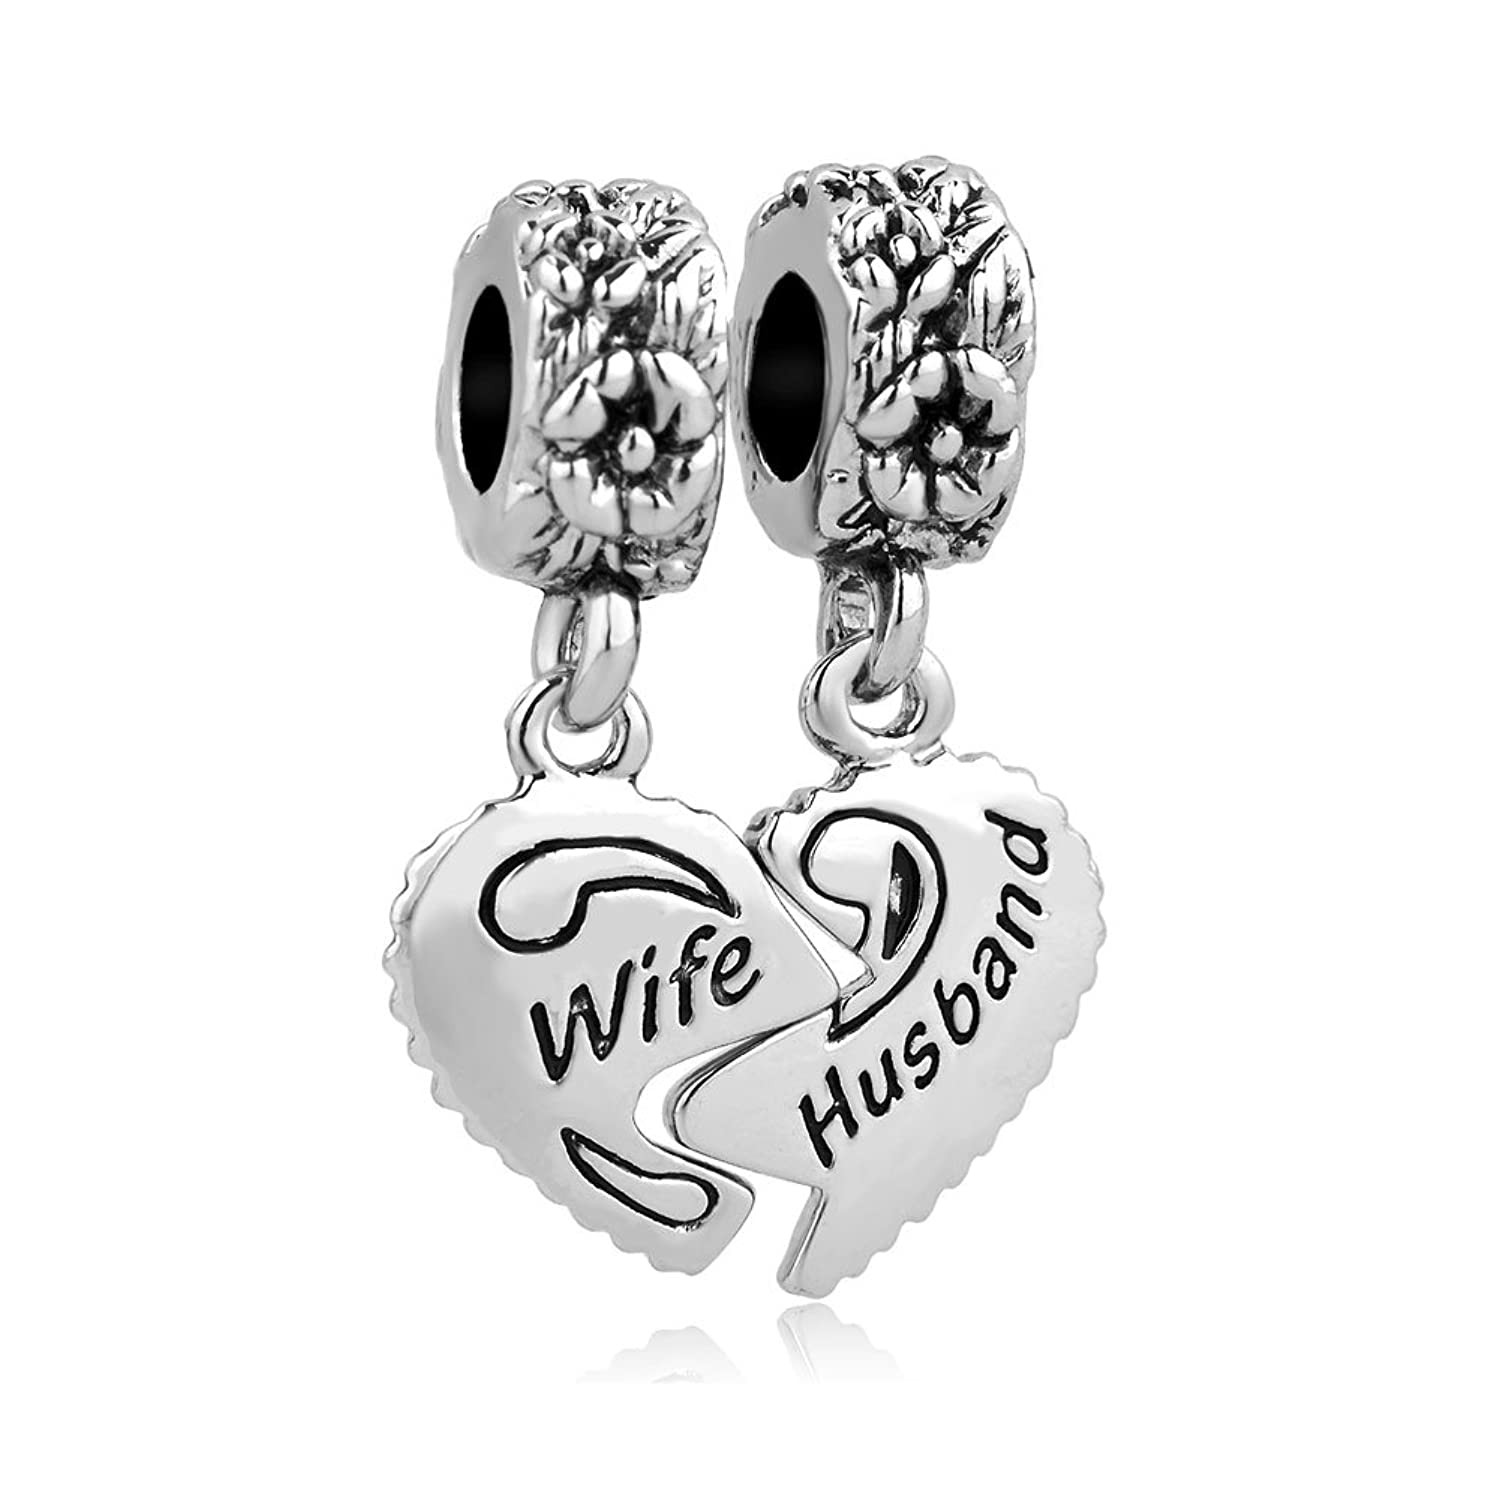 4681d7a01 ... qvc e3d8b d8ba9 canada pandora bauble christmas pendant charm amazon  valentines day gifts lovelyjewelry wife husband charms love family ...